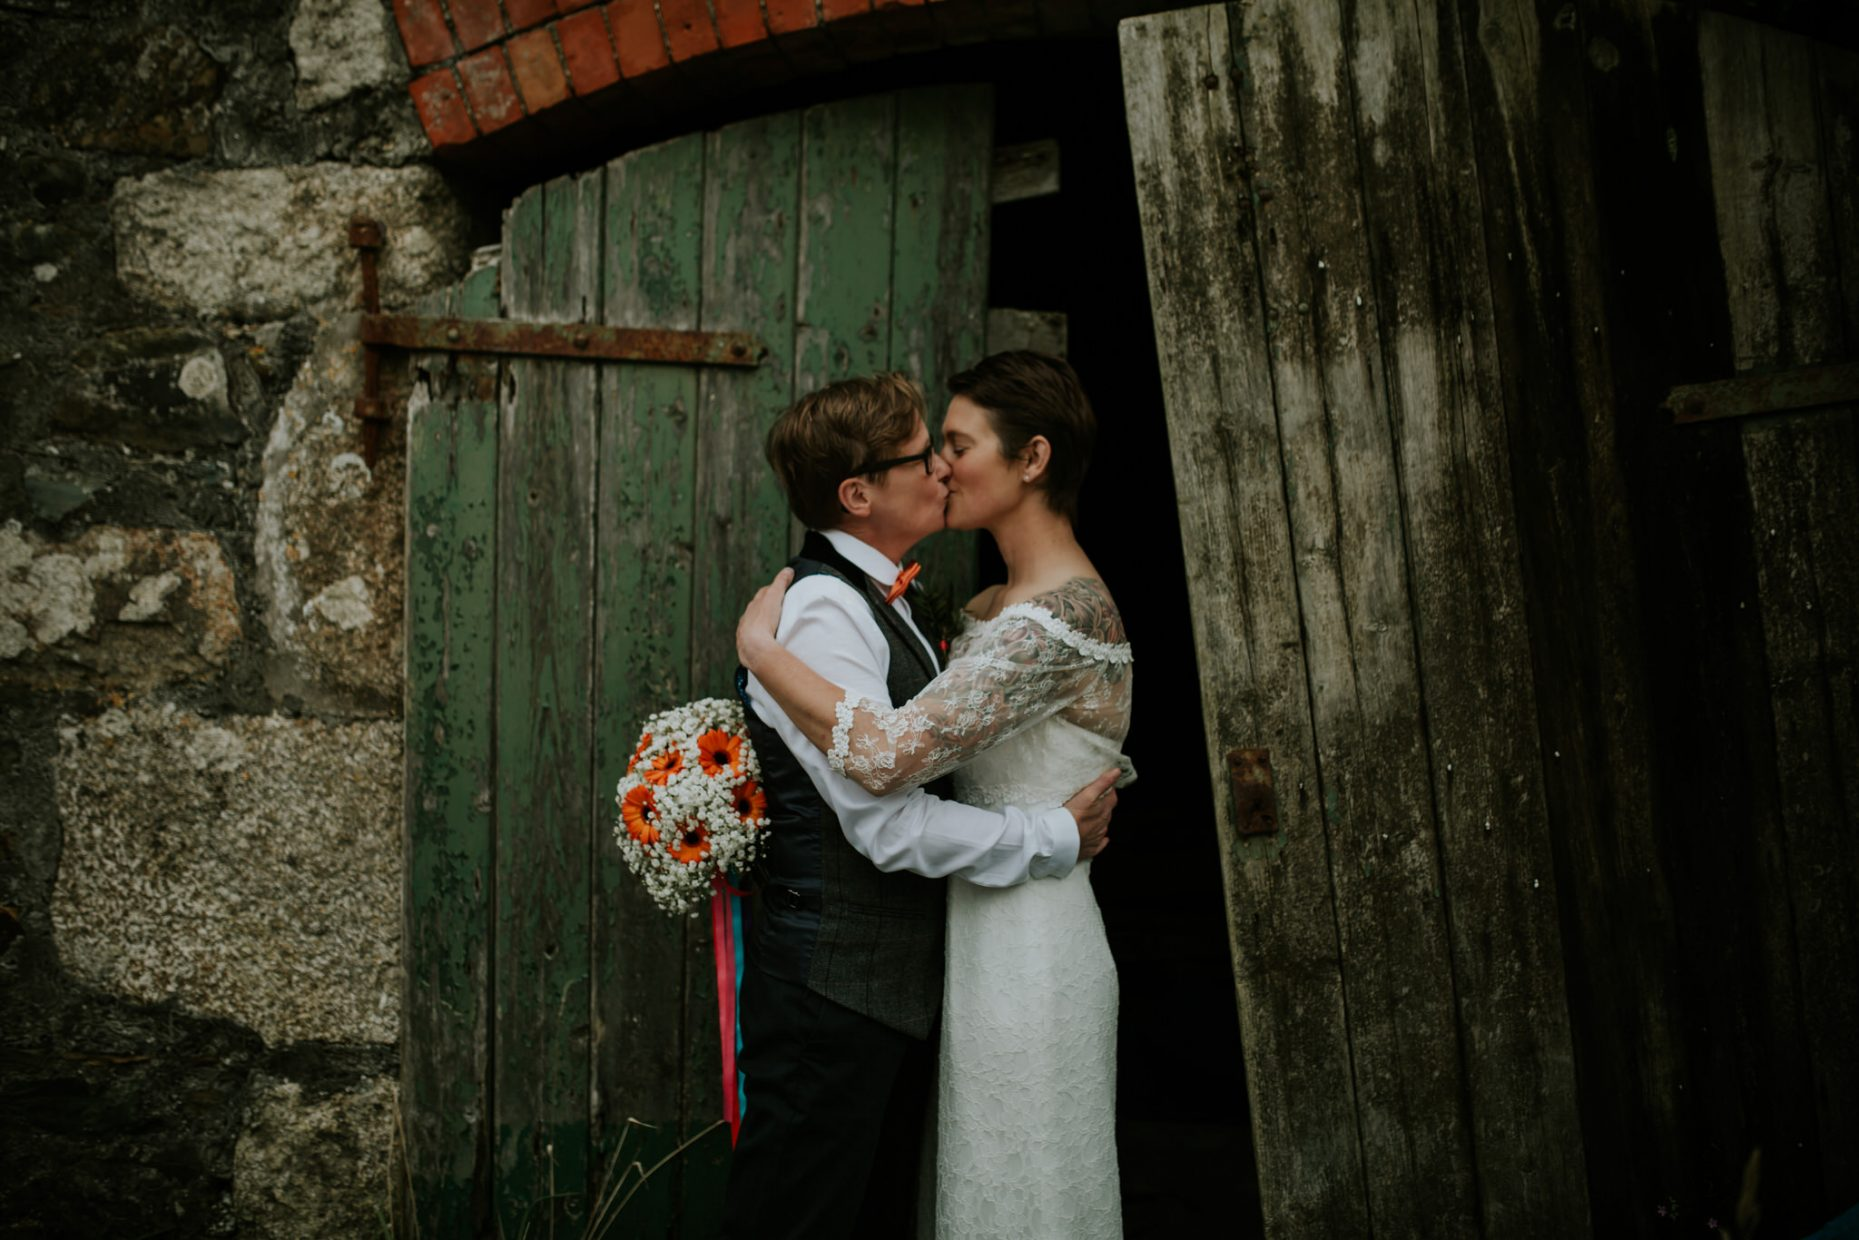 two brides kiss in a doorway with flowers in the one brides hand